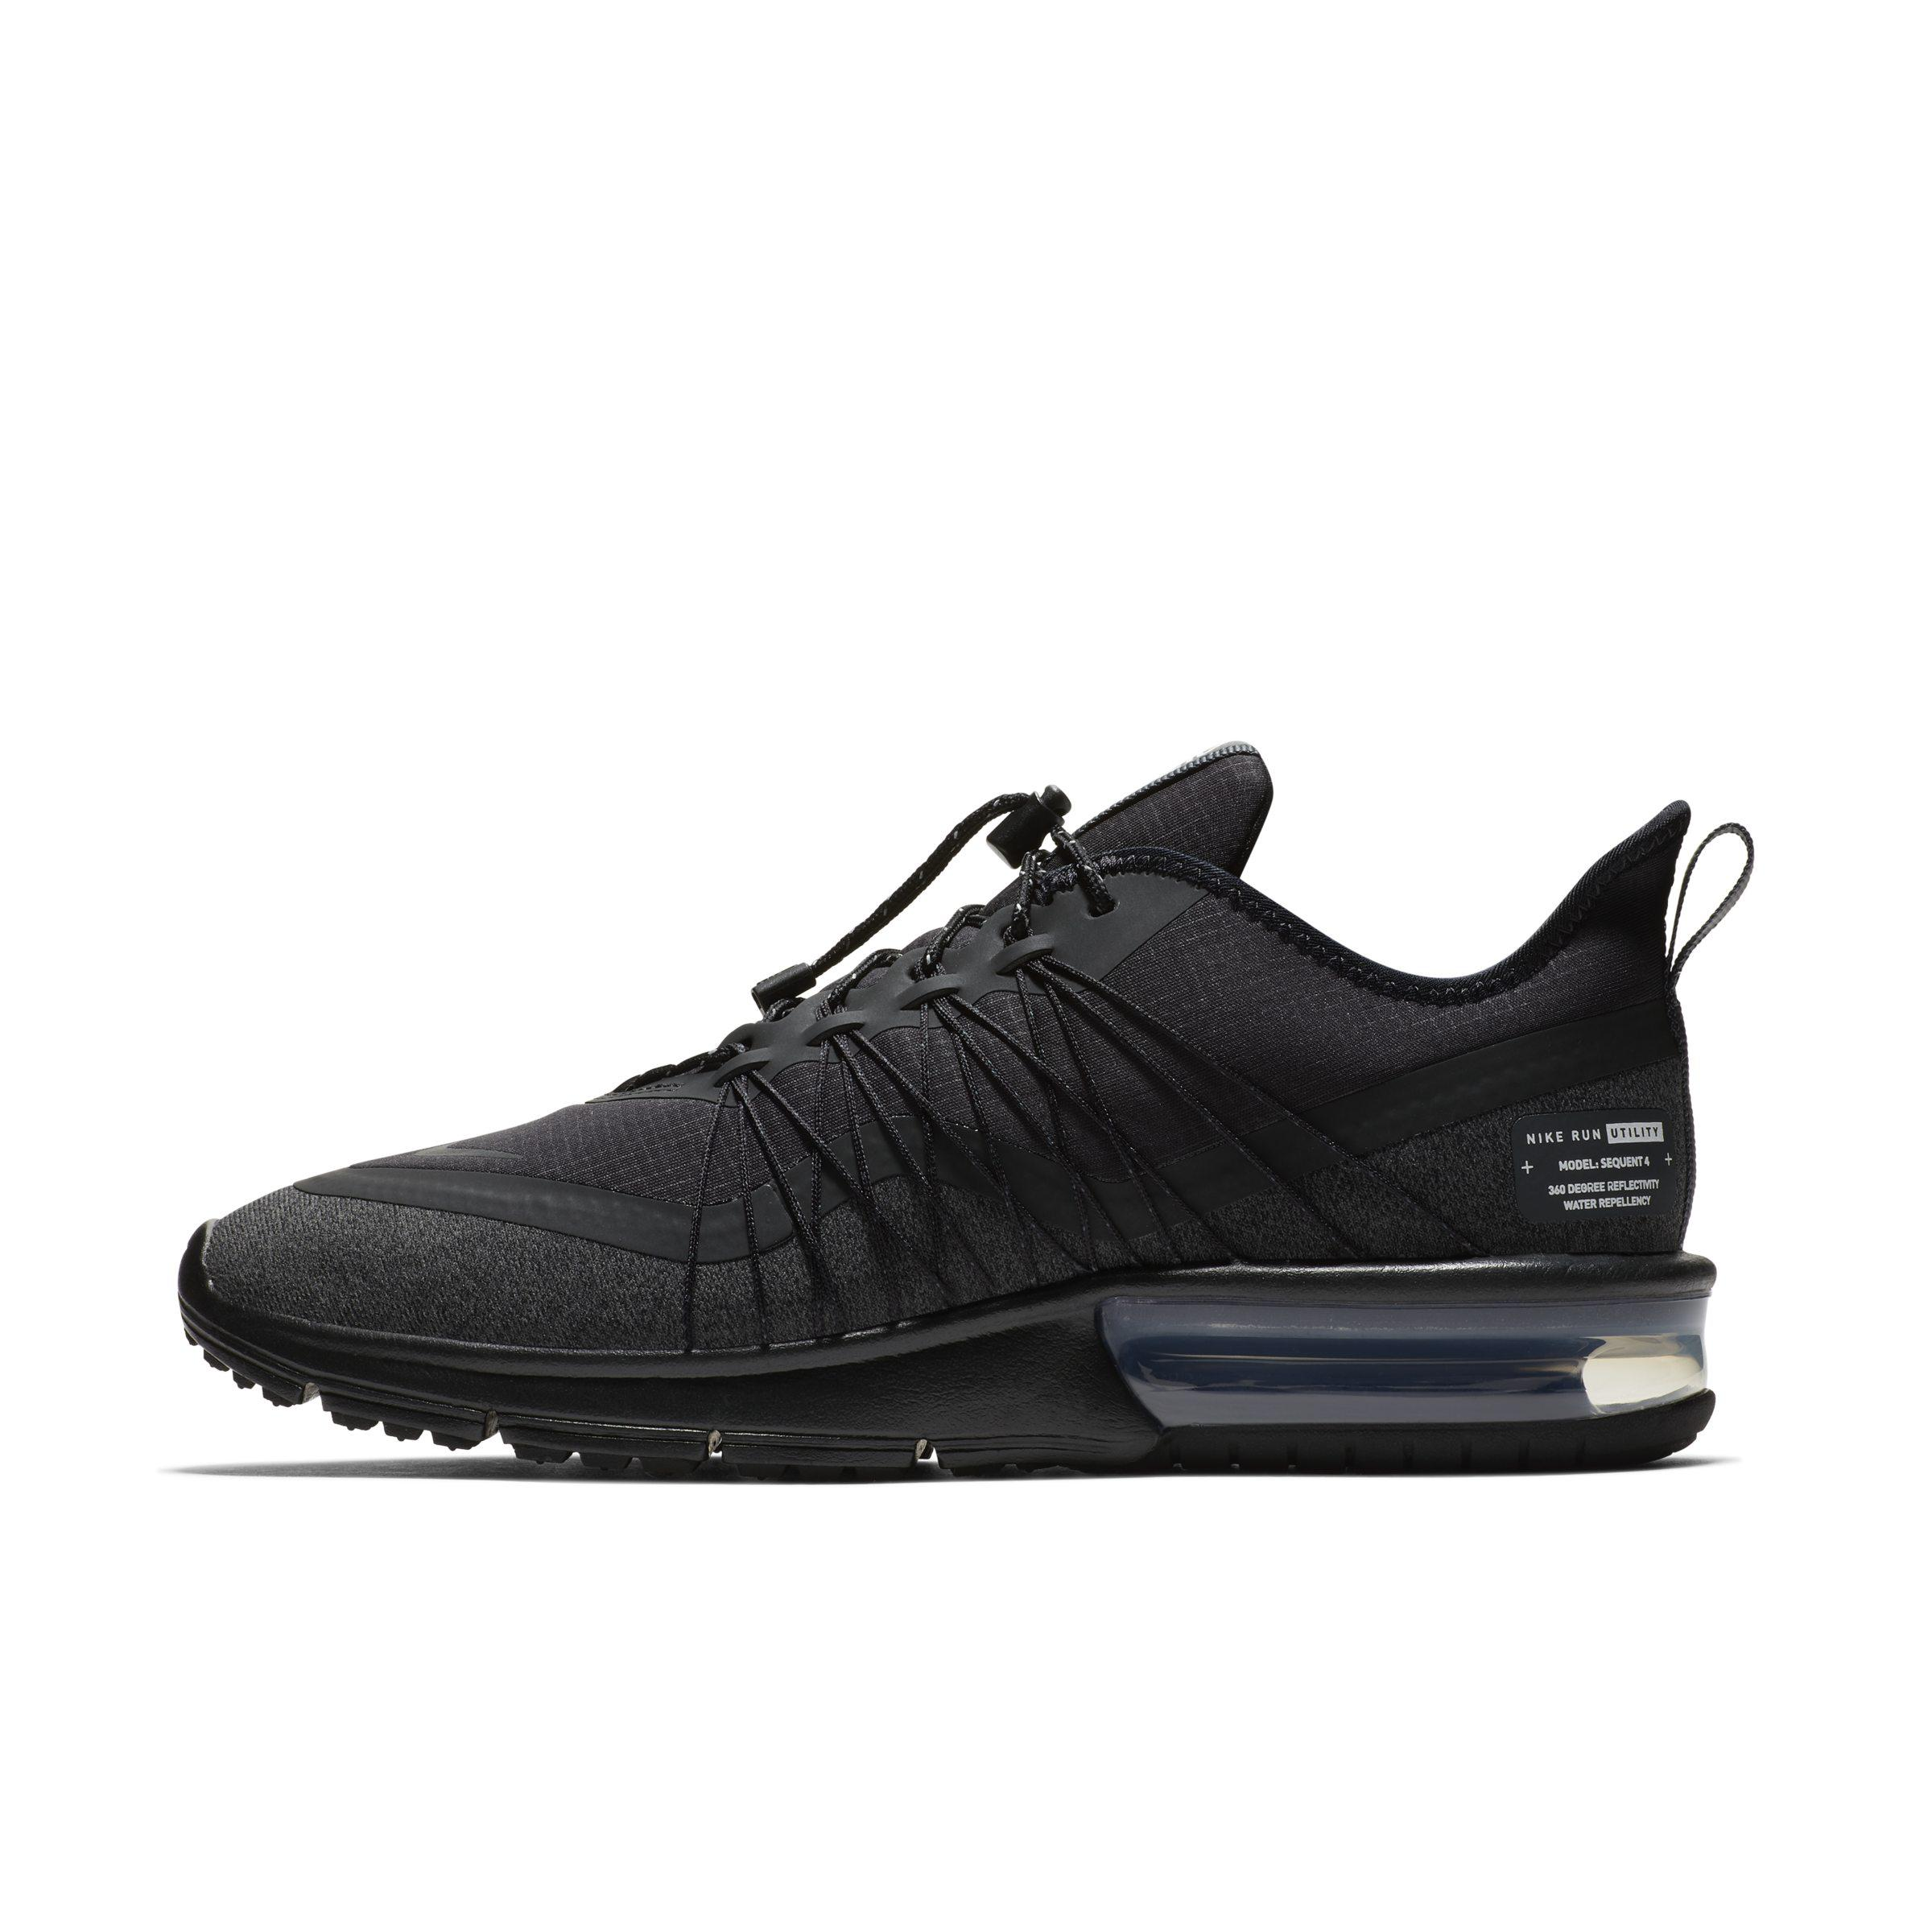 the best attitude f6dd2 21888 Nike Air Max Sequent 4 Utility Shoe in Black - Lyst